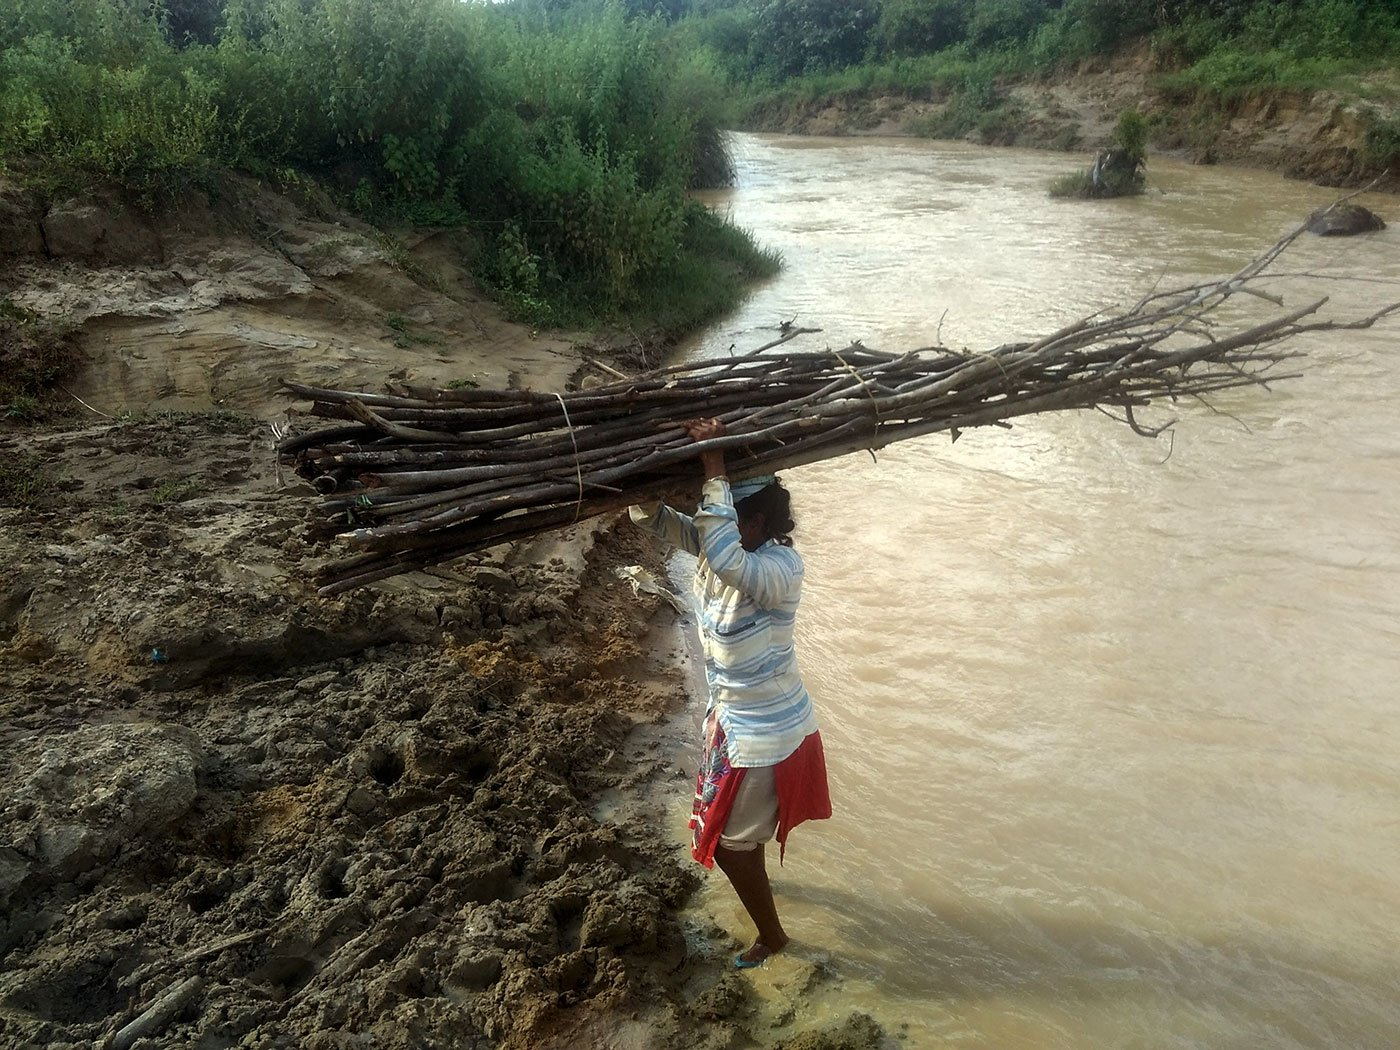 Allam Pavani, 16, carrying wood from the forests to the village. The wood stack on her head would weigh no less than 10 kgs and she has to walk three kilometers crossing streams and forests to reach her village.